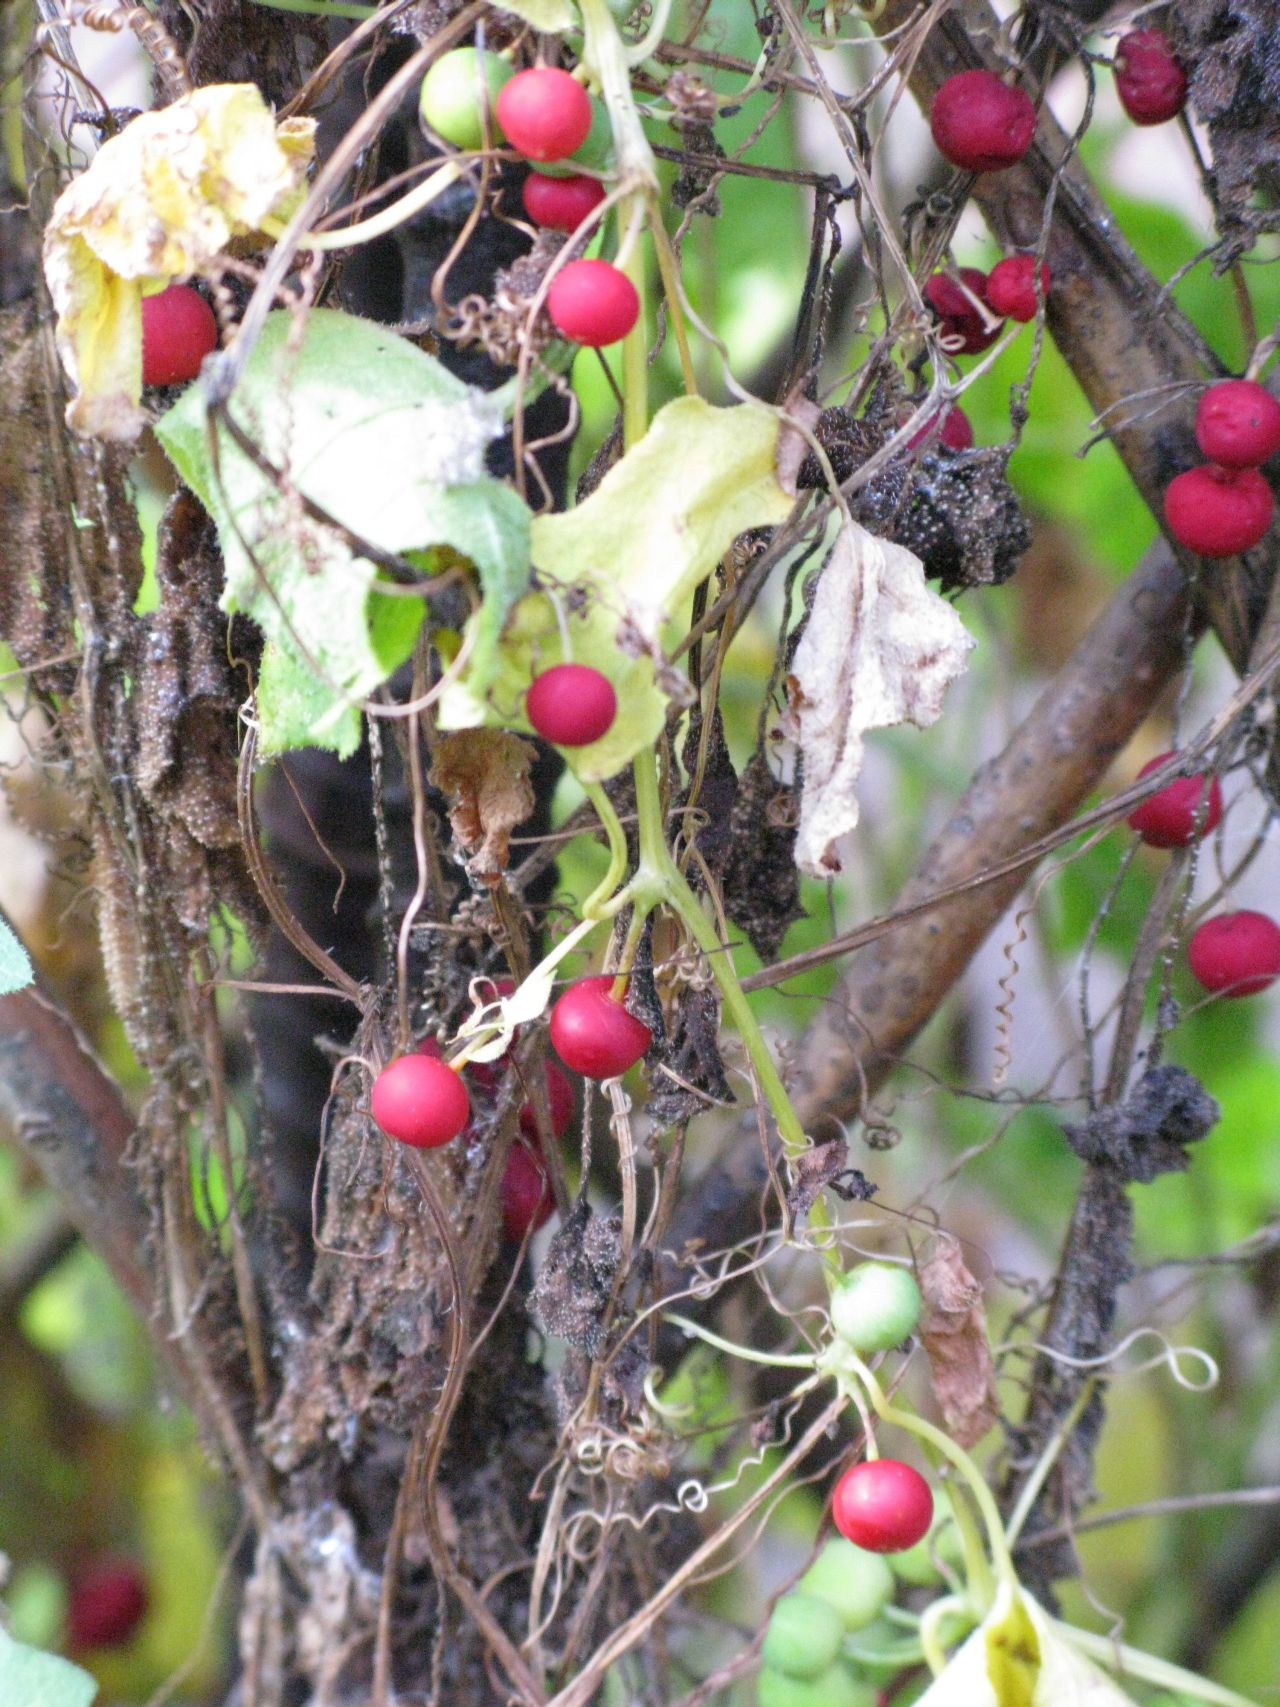 Red bryony vine in fruit in October